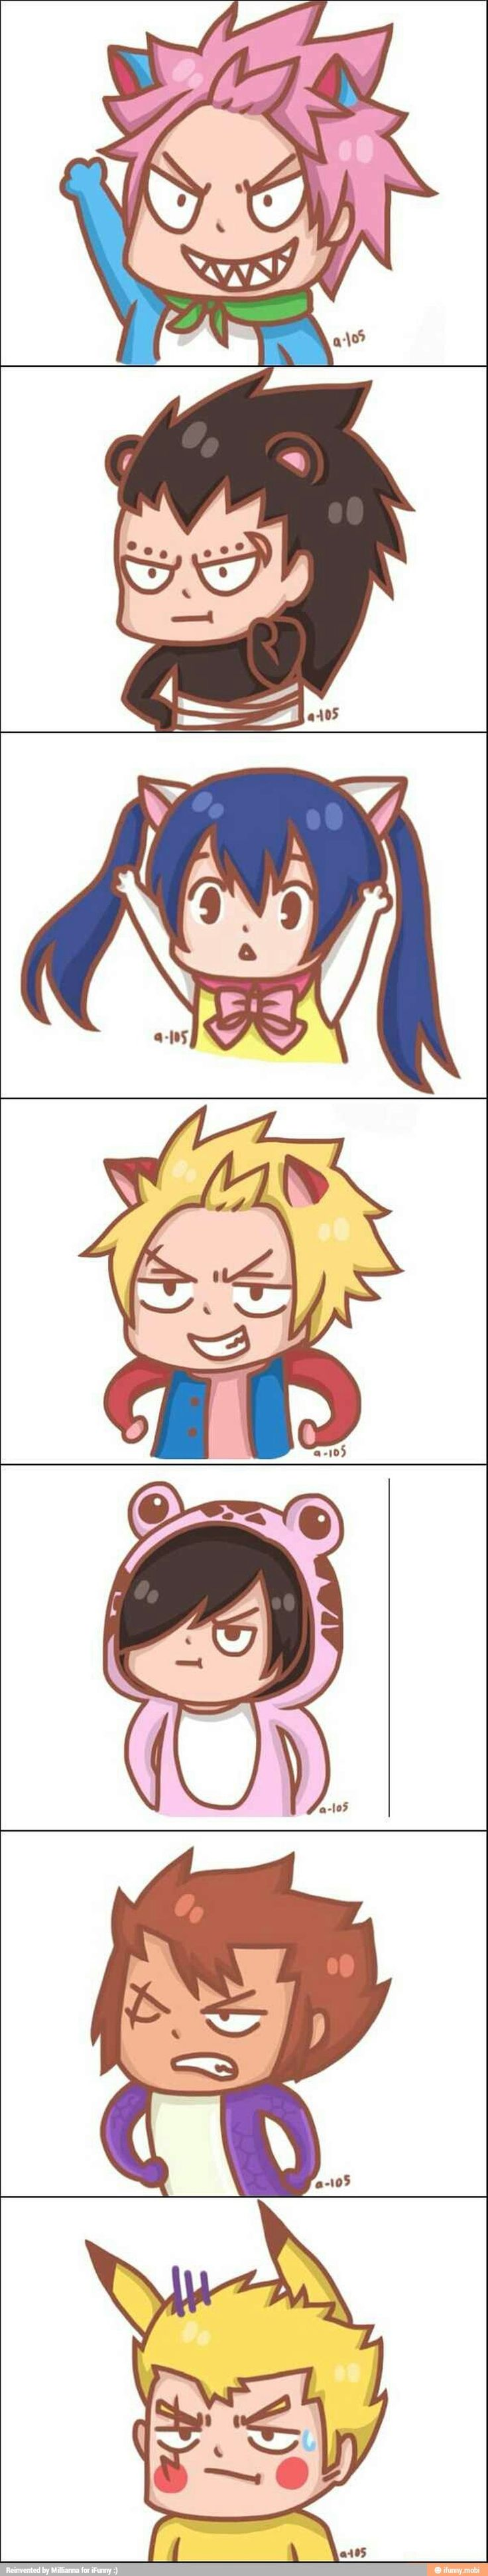 Laxus has Pikachu and Rogue is adorable